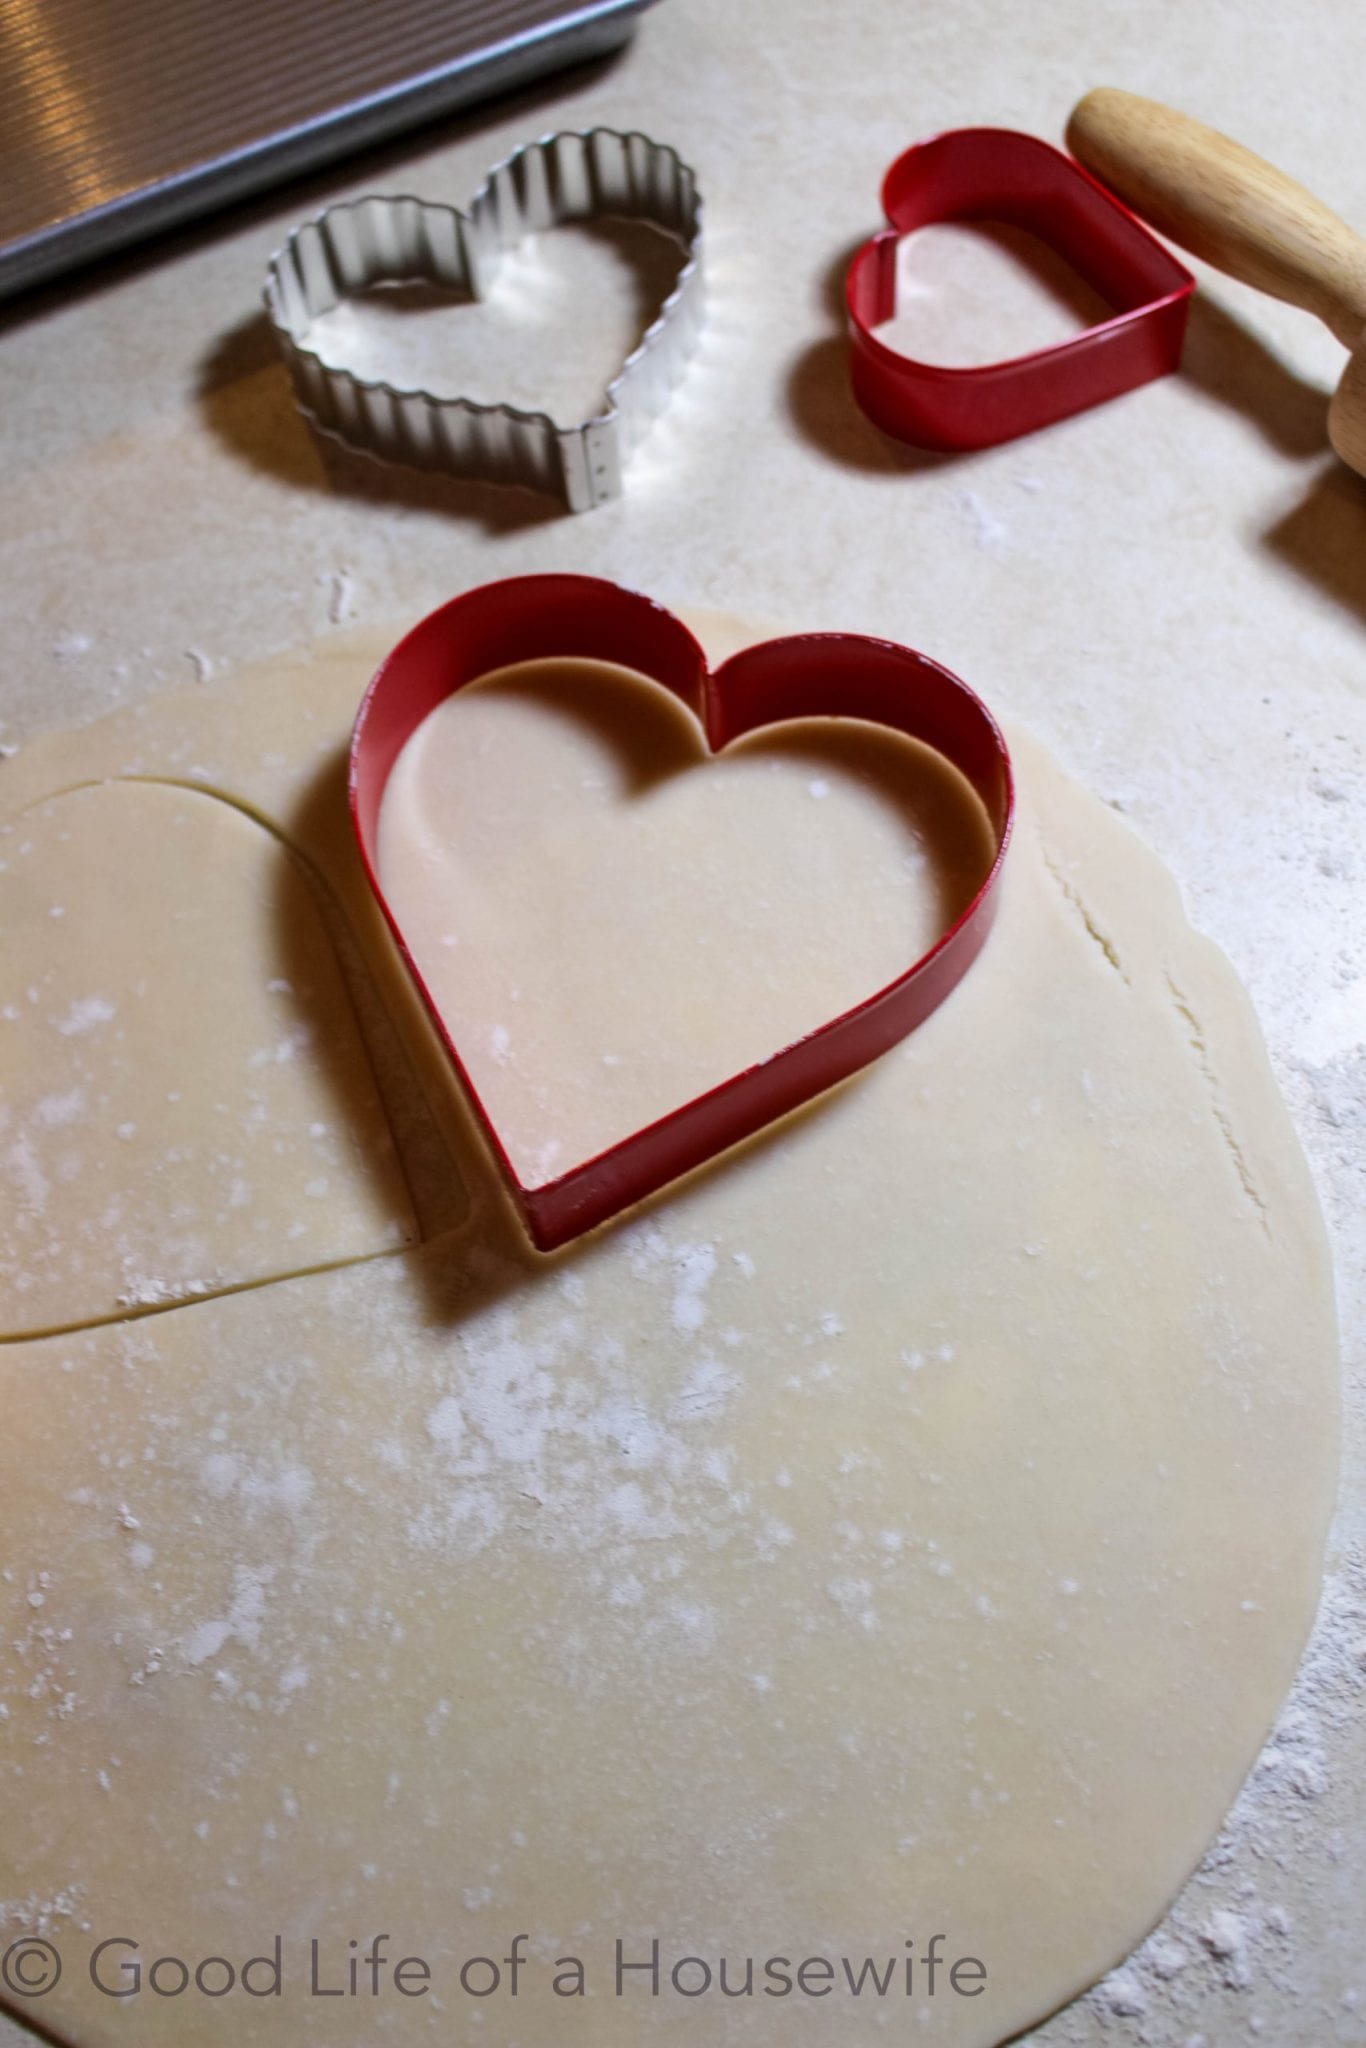 Heart shaped apple turnover for Valentine's Day